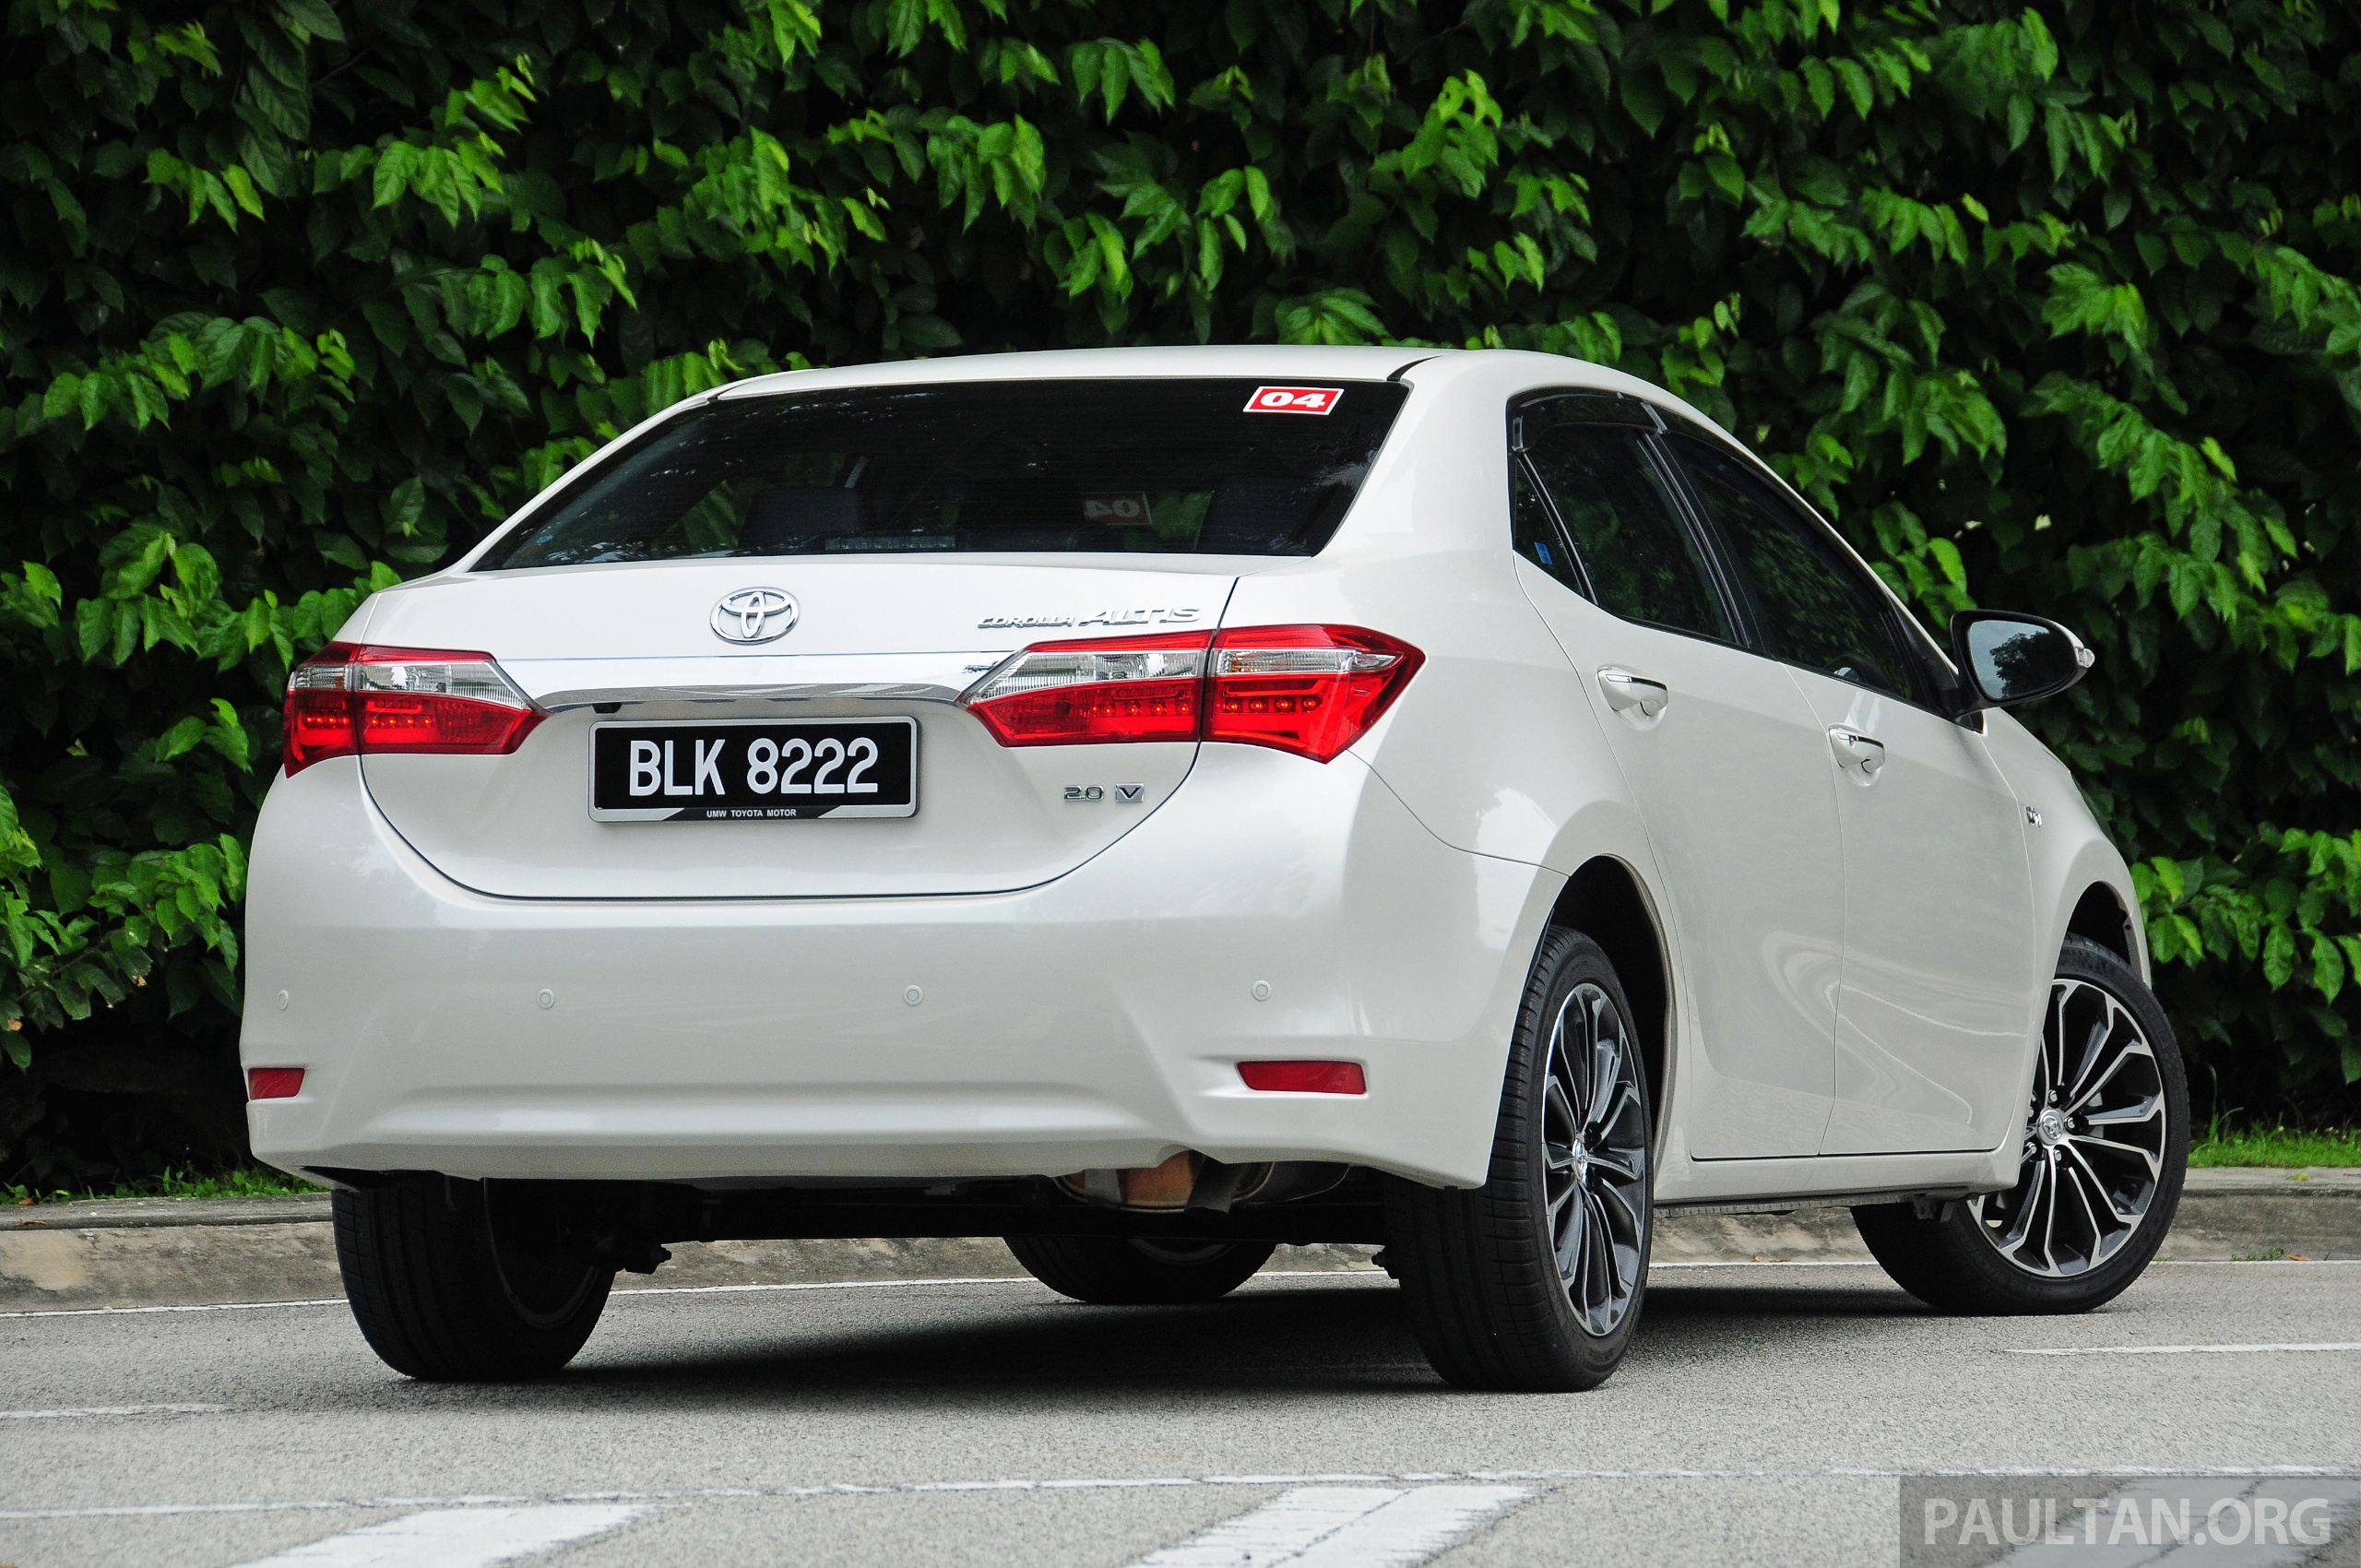 Driven 2014 toyota corolla altis 2 0v on local roads image 222443